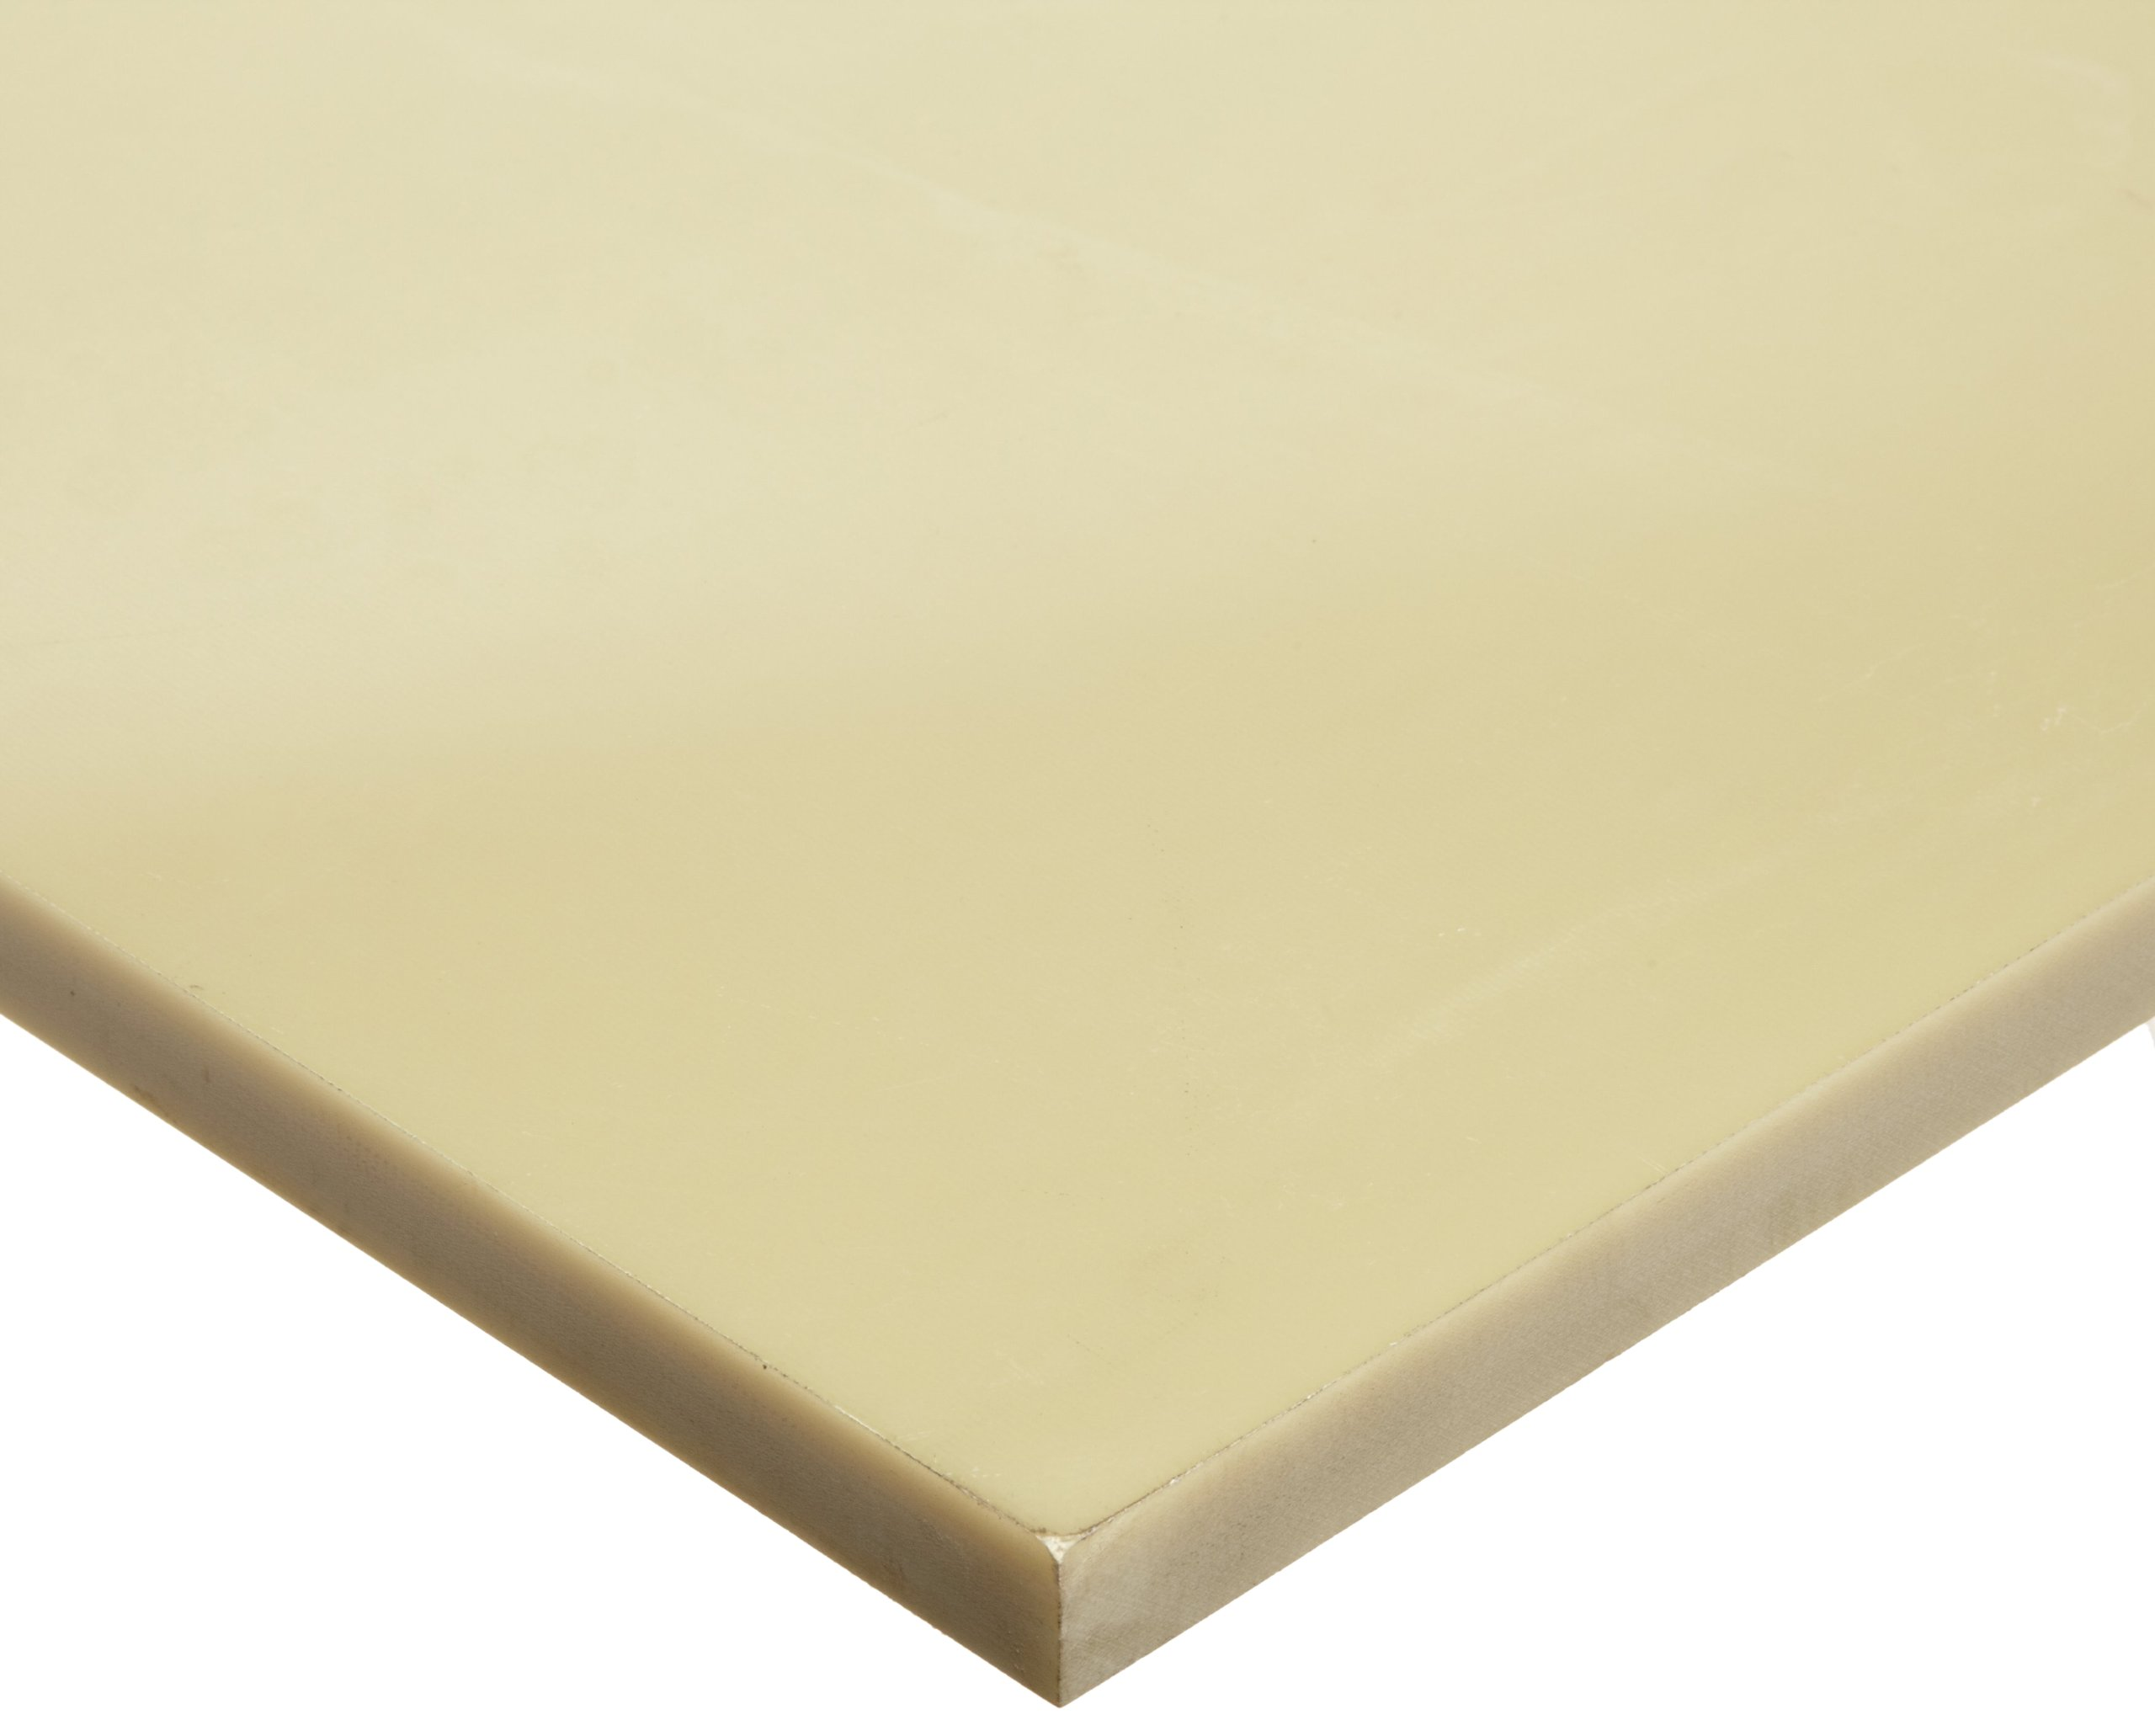 Phenolic Sheet, Opaque Off-White, 0.25'' Thickness, 6'' Width, 12'' Length (Pack of 1) by Small Parts